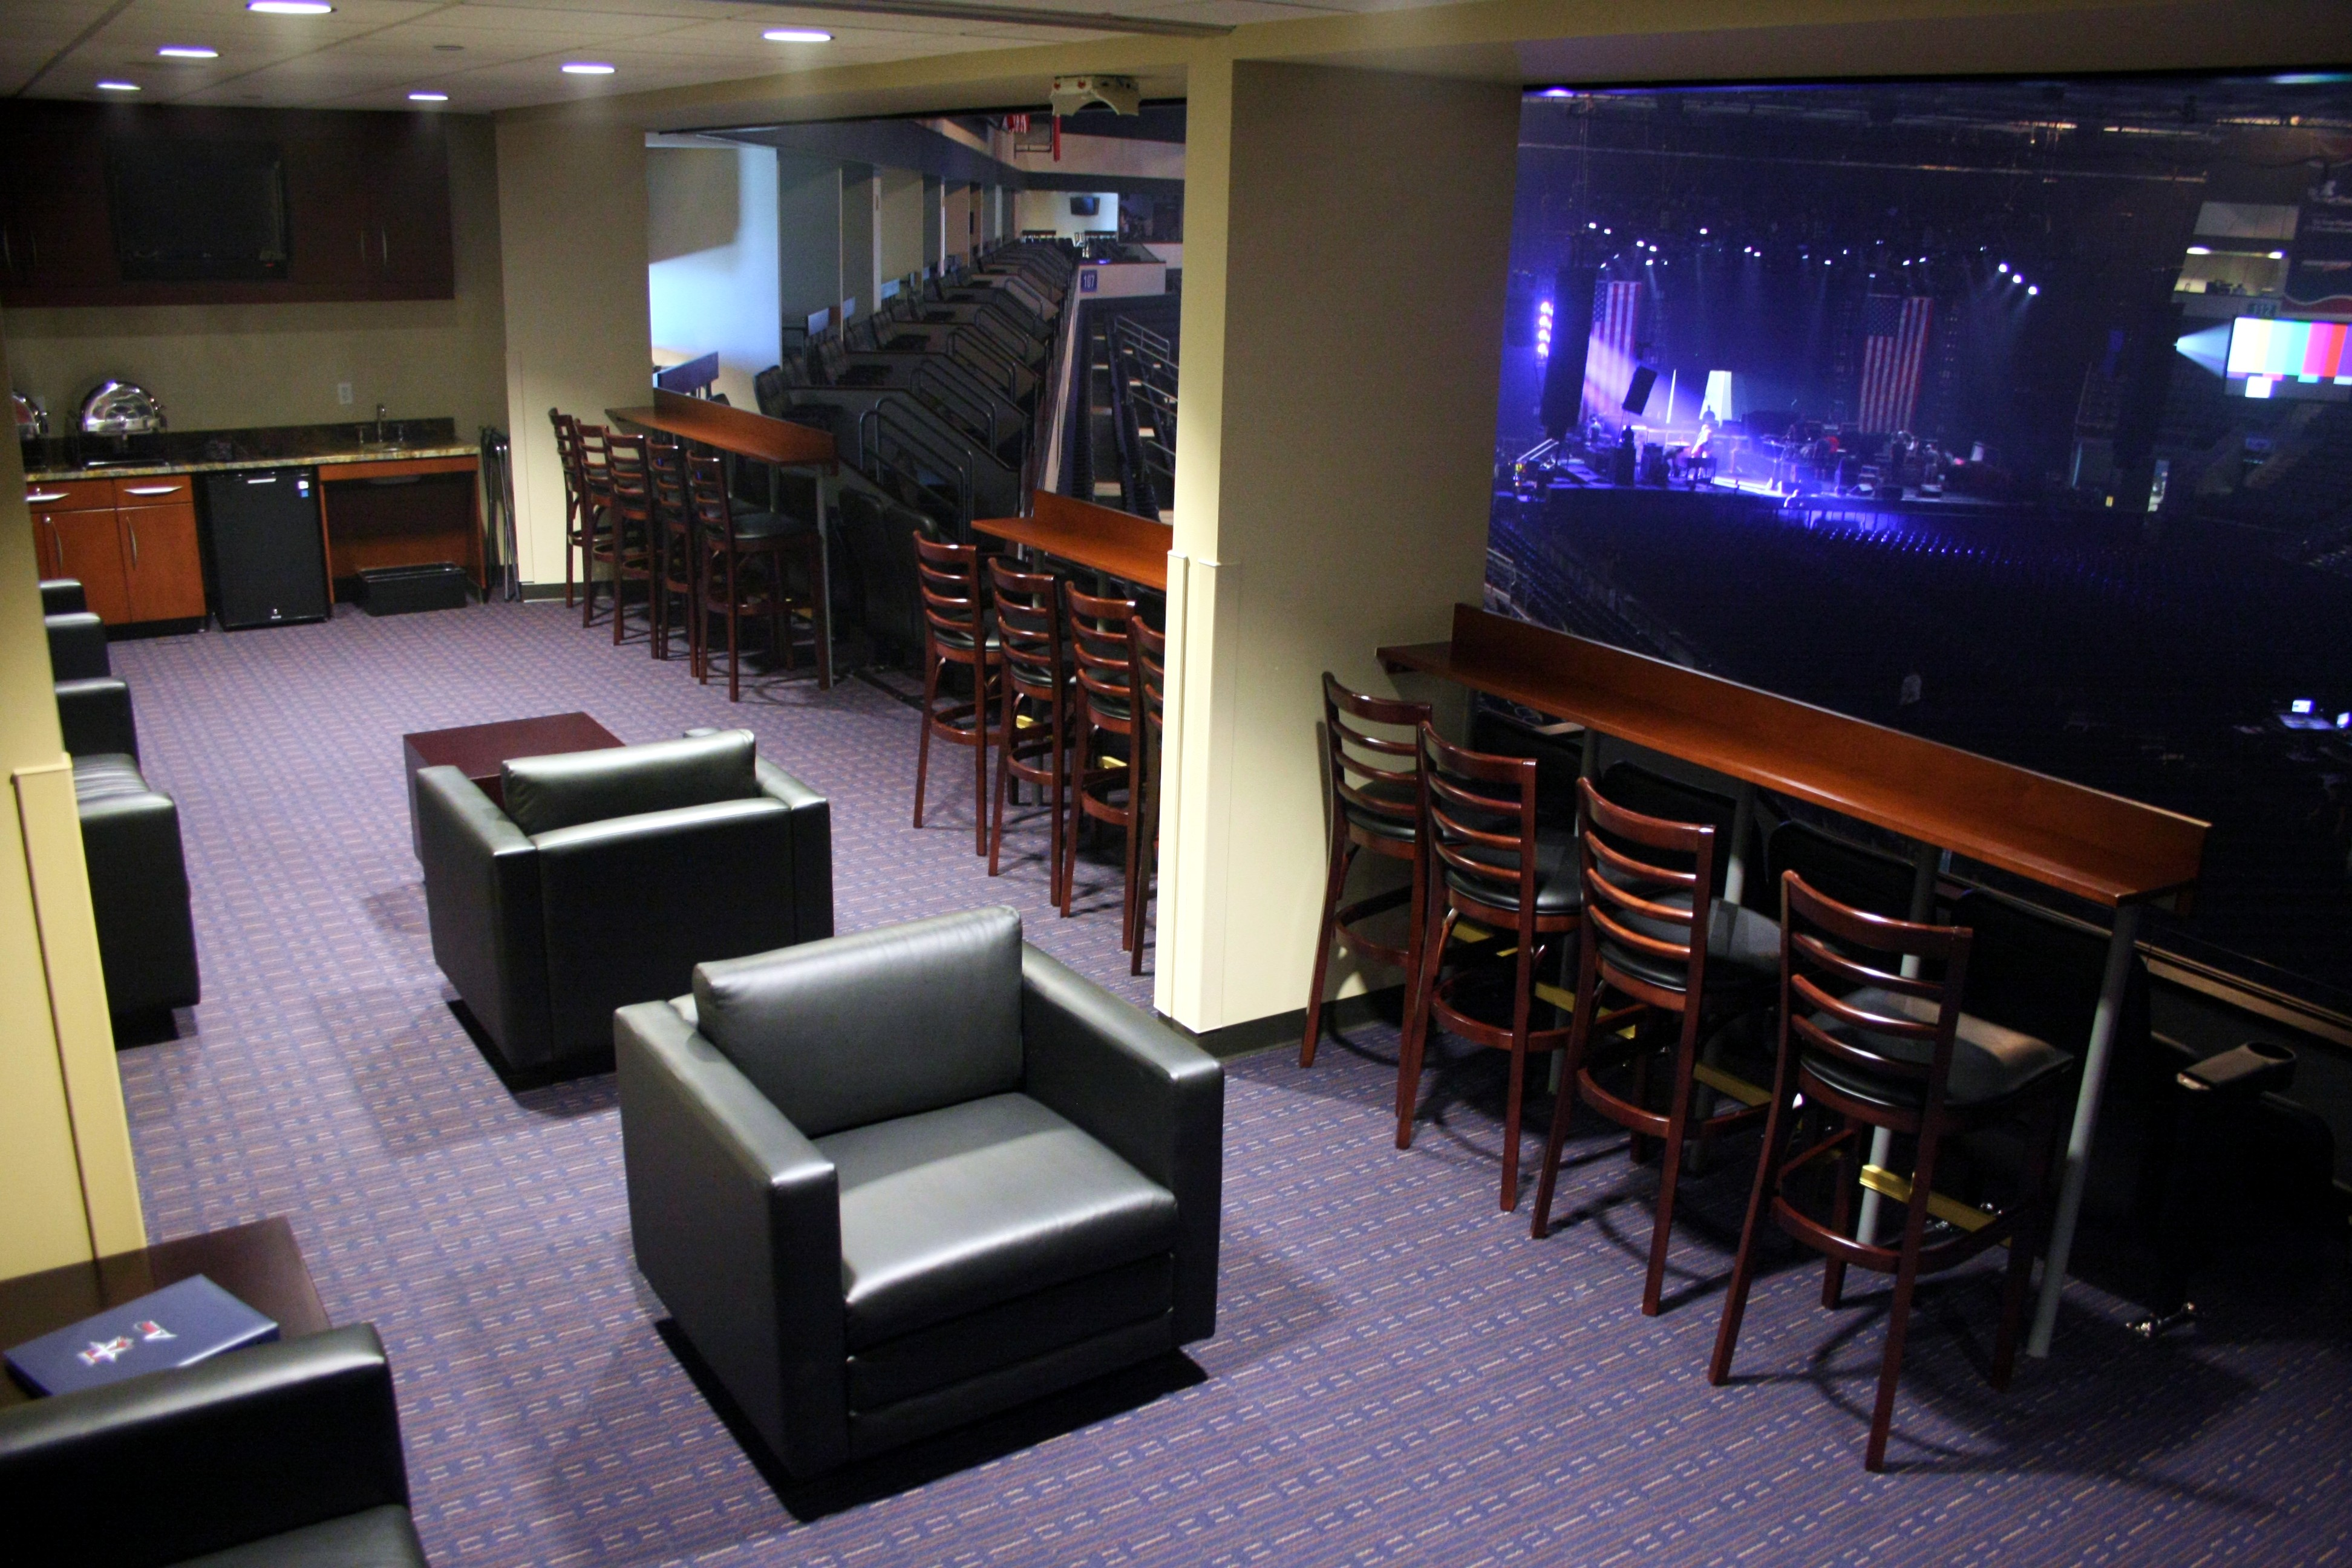 Treat your team (or your clients) to a fun-filled night out in one of Allen Event Center's premium-level suites during a sporting event or concert